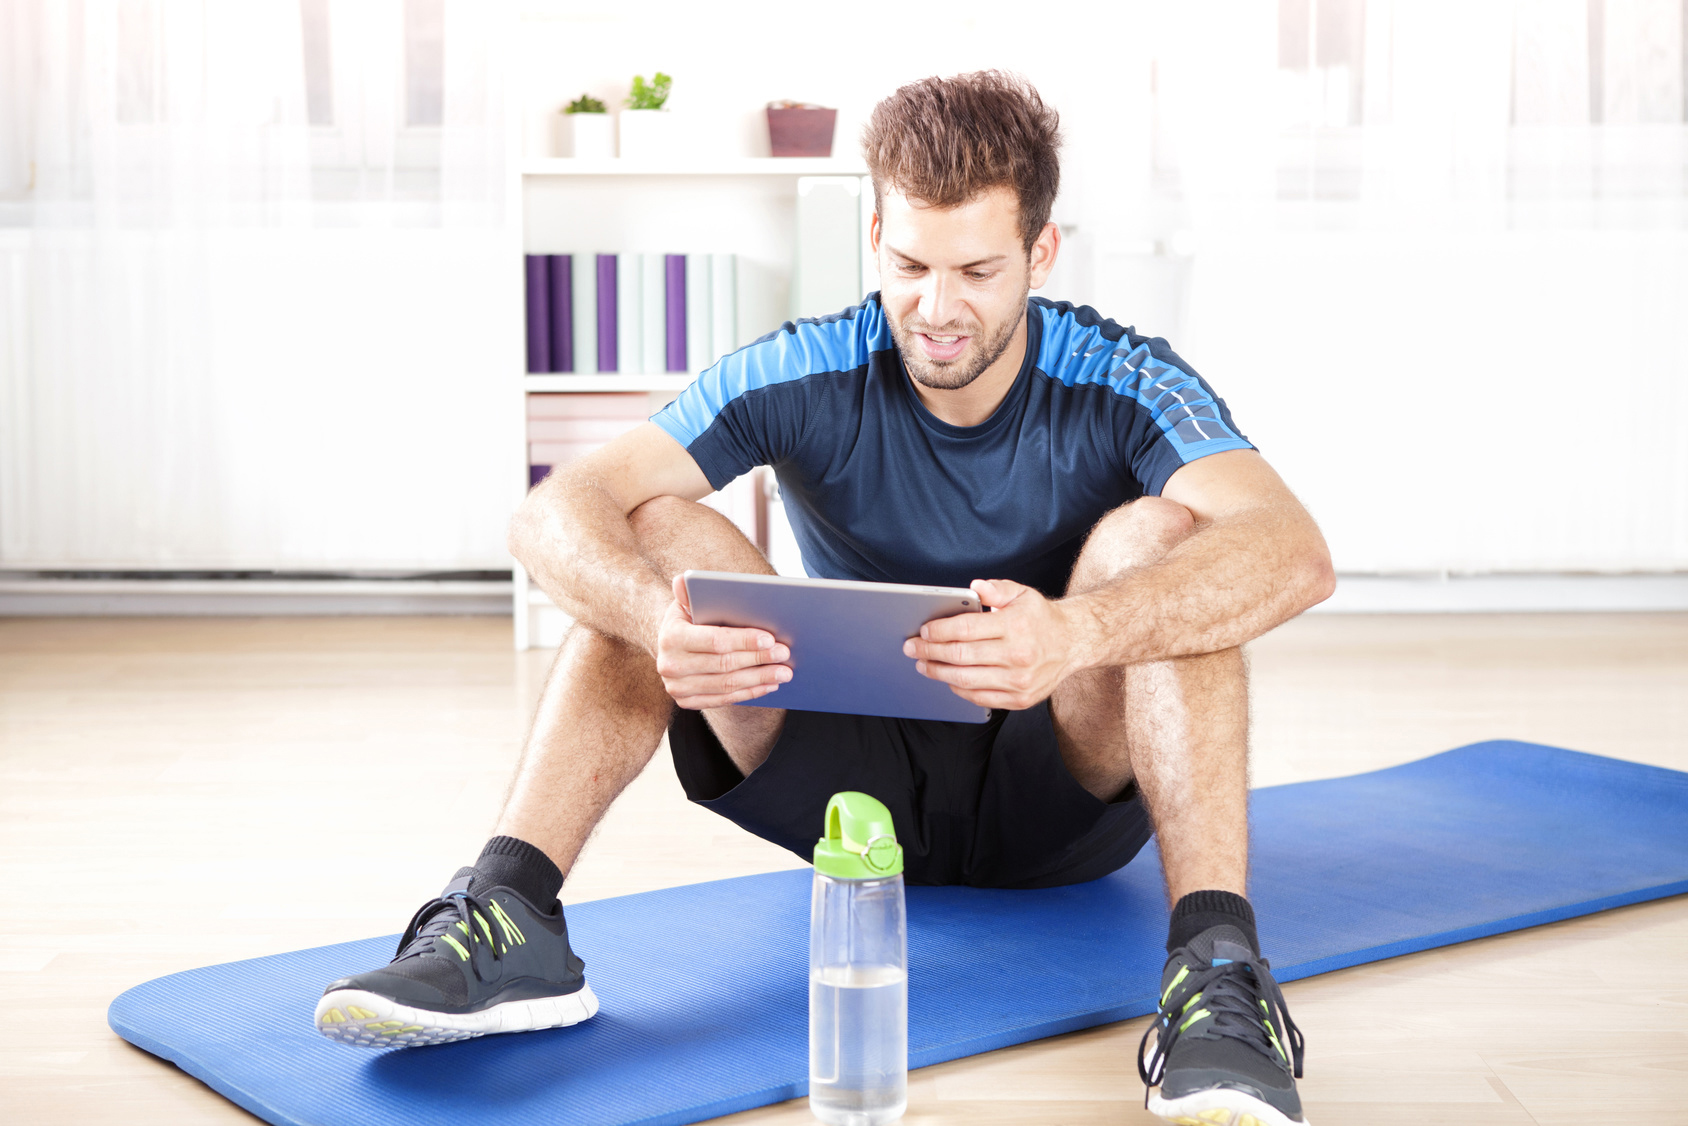 getting inspired from coach in online fitness training